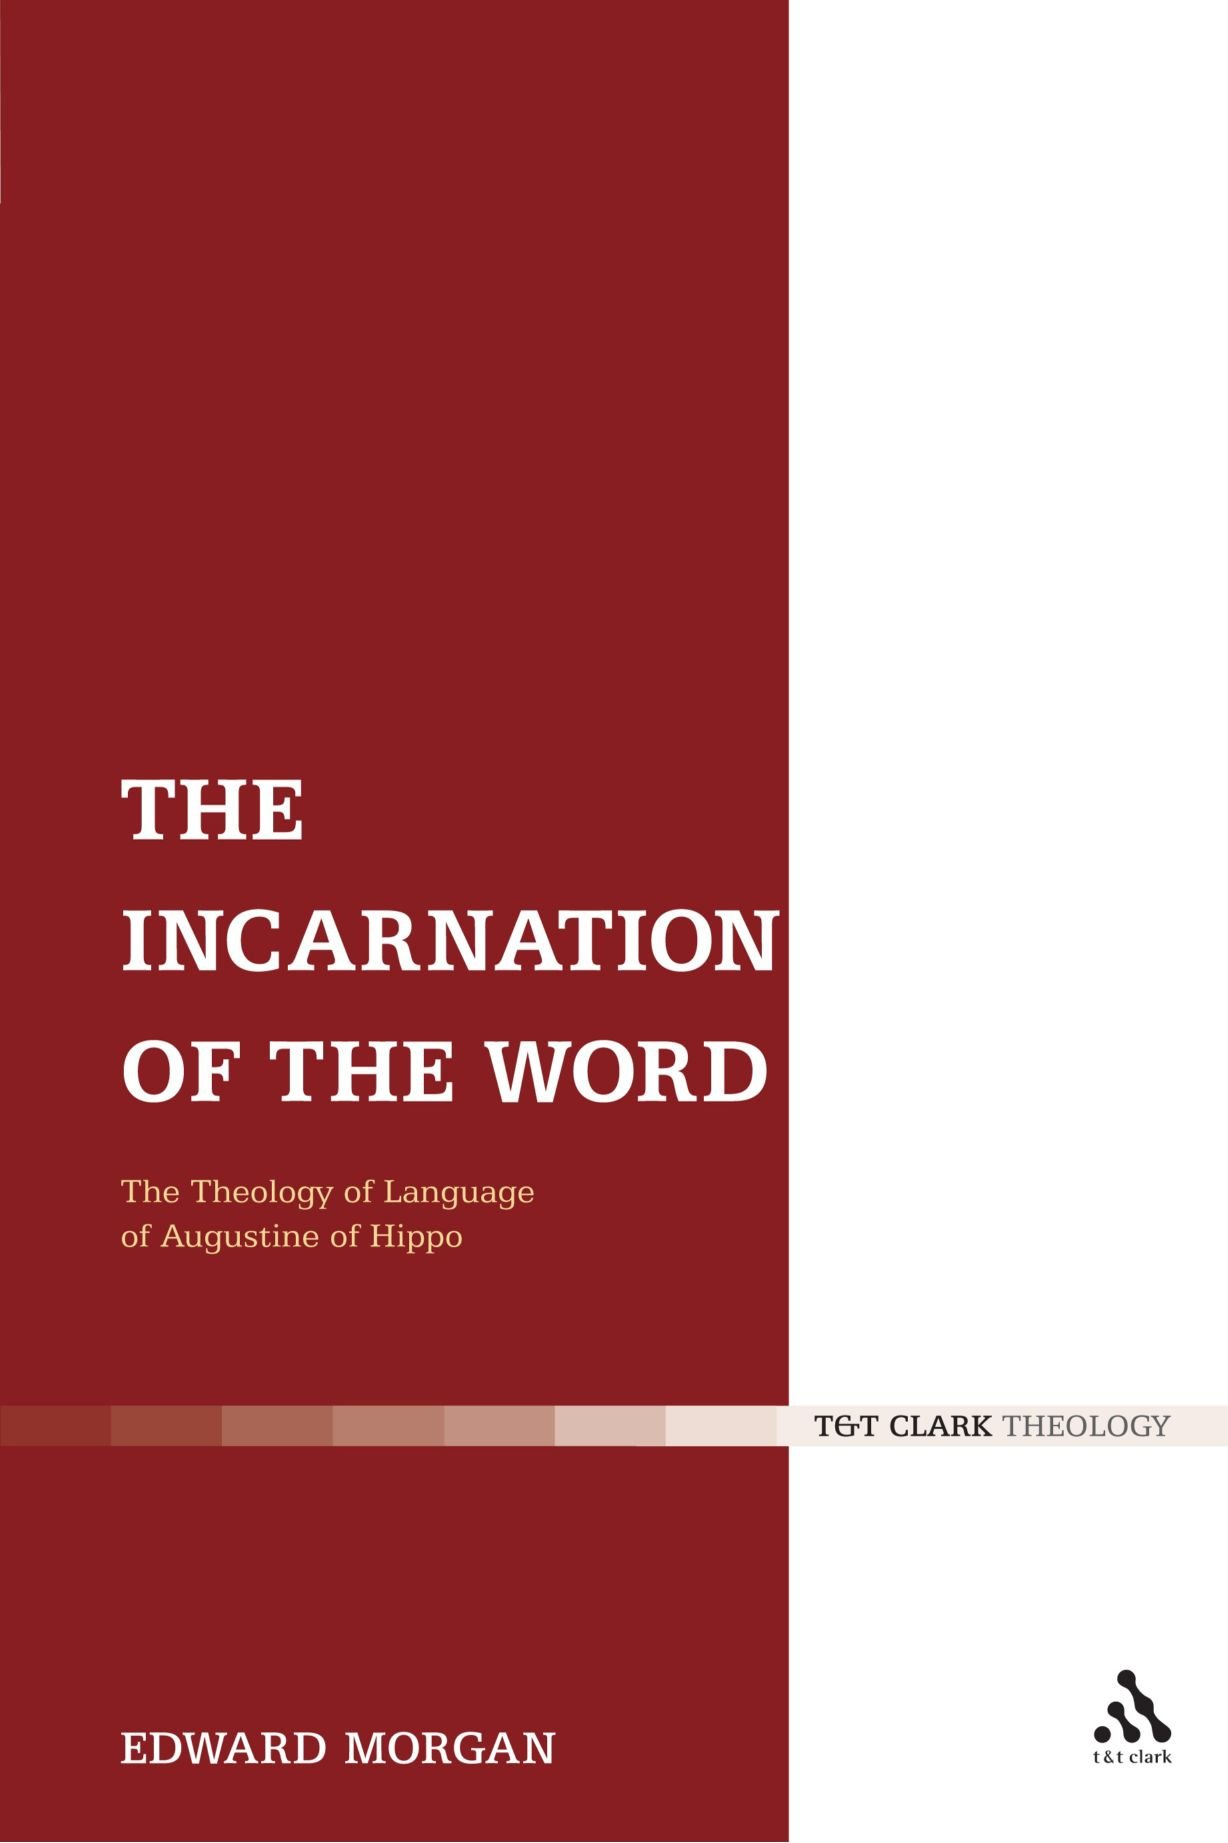 The Incarnation of the Word: The Theology of Language of Augustine of Hippo (T&T Clark Theology)